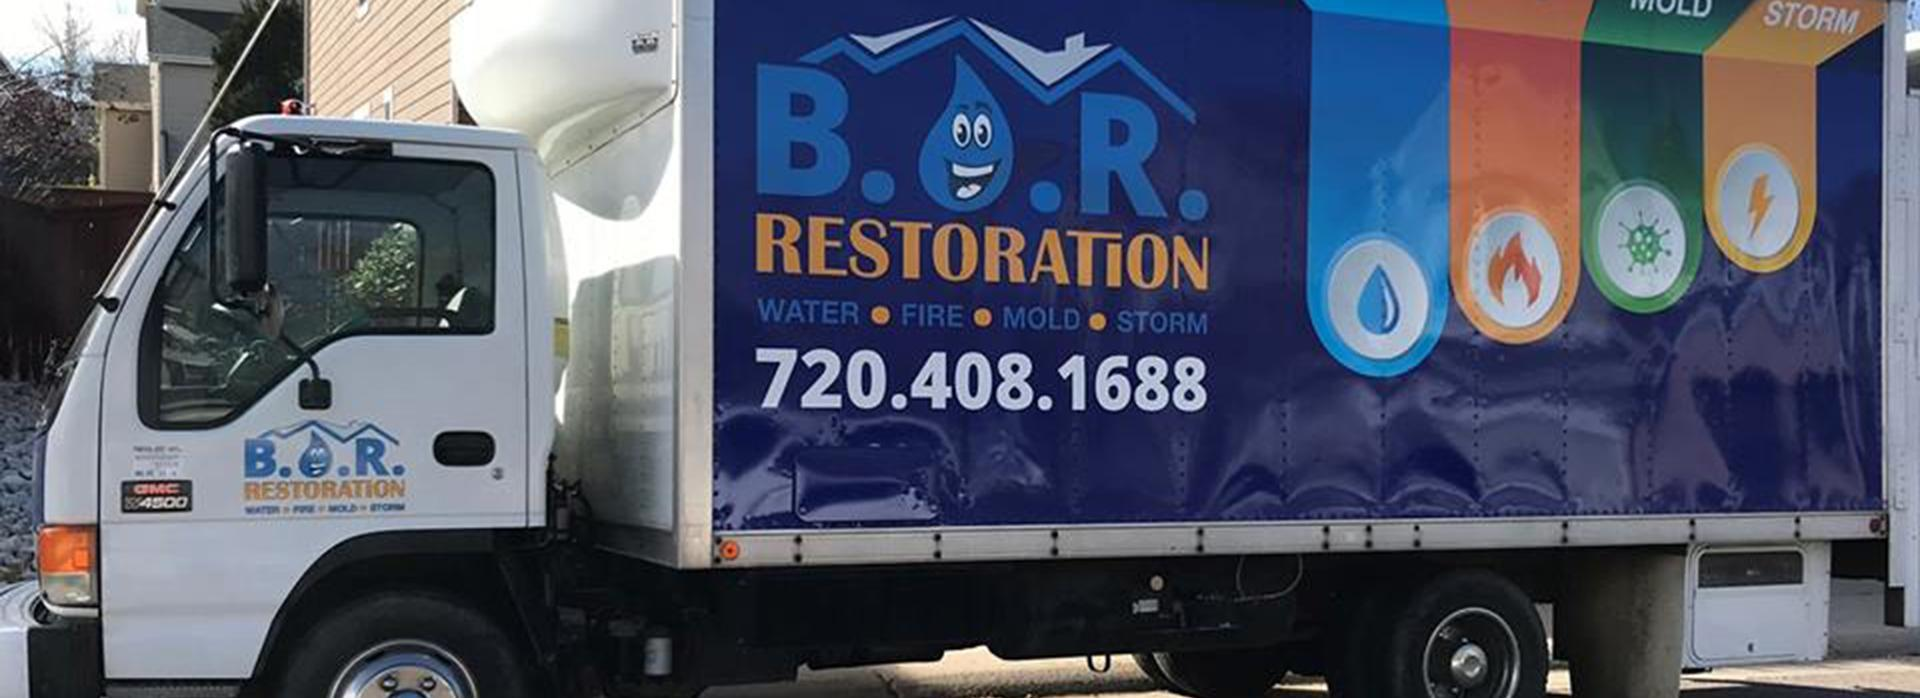 truck-bor-restoration-franchise-small